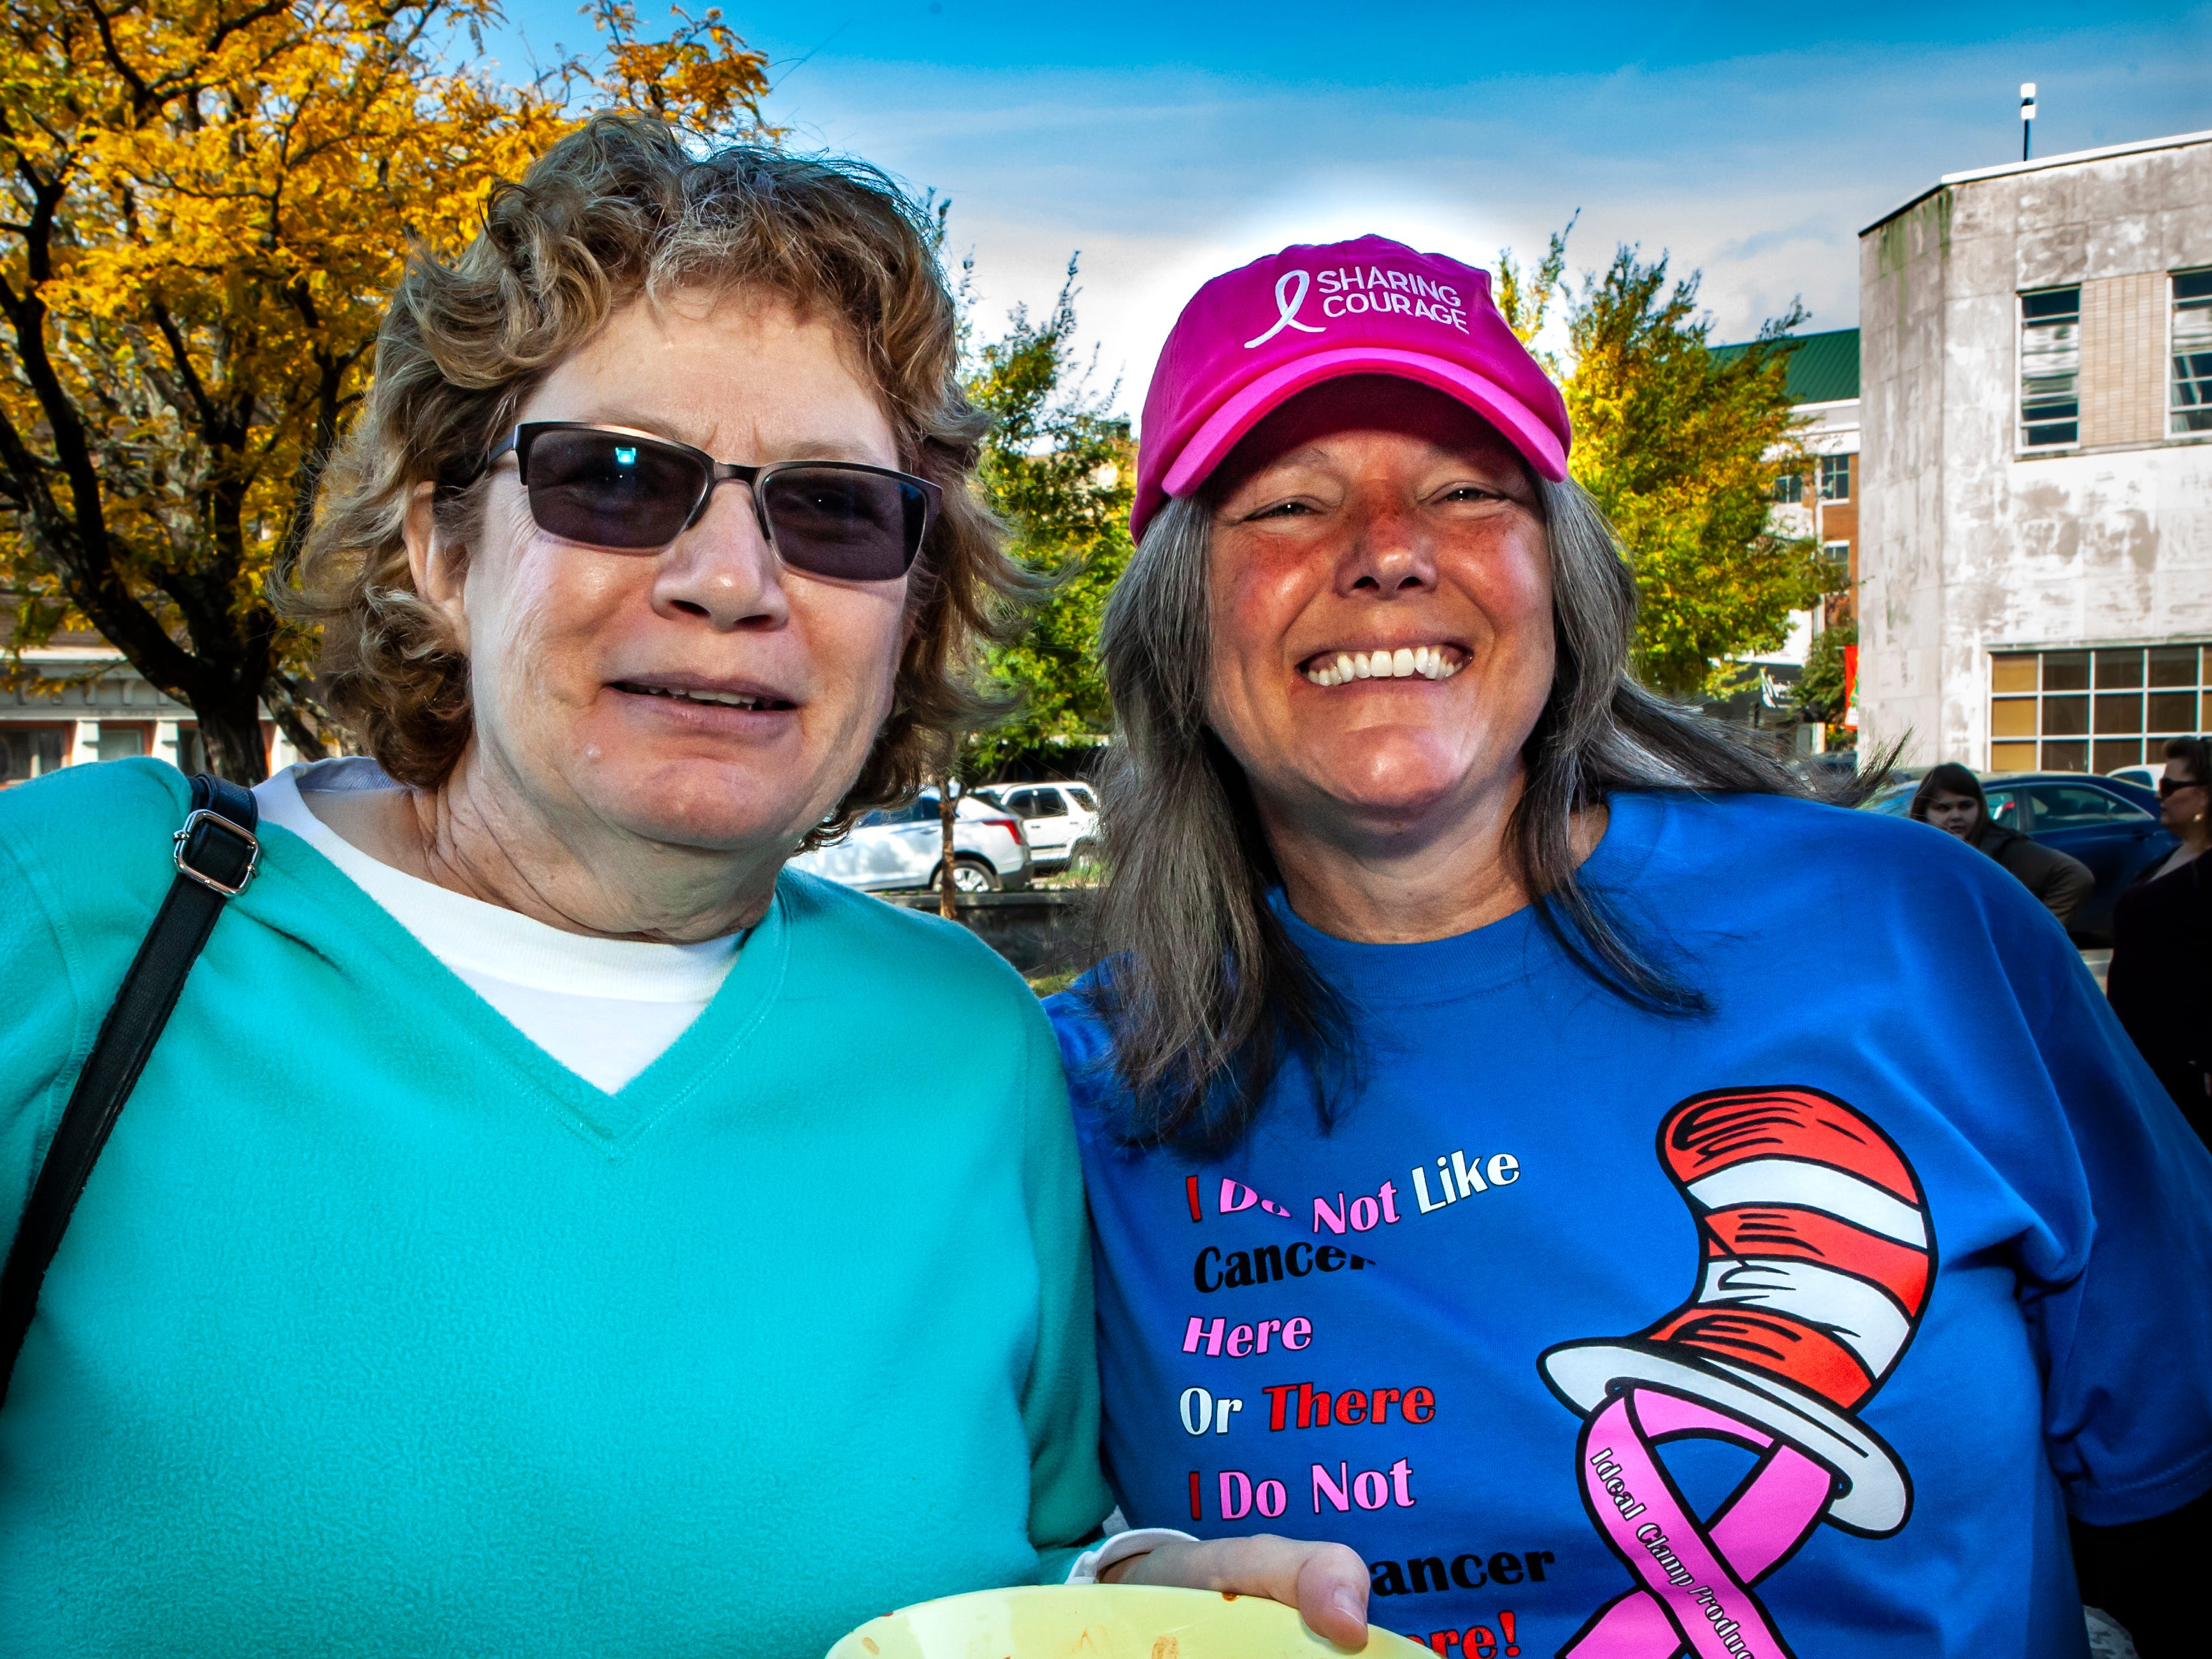 Cheryl Hicks and C.J. Combs at Rutherford County Habitat for Humanity's 2018 Cookin' to Build fundraiser on Saturday, Nov. 3, 2018.